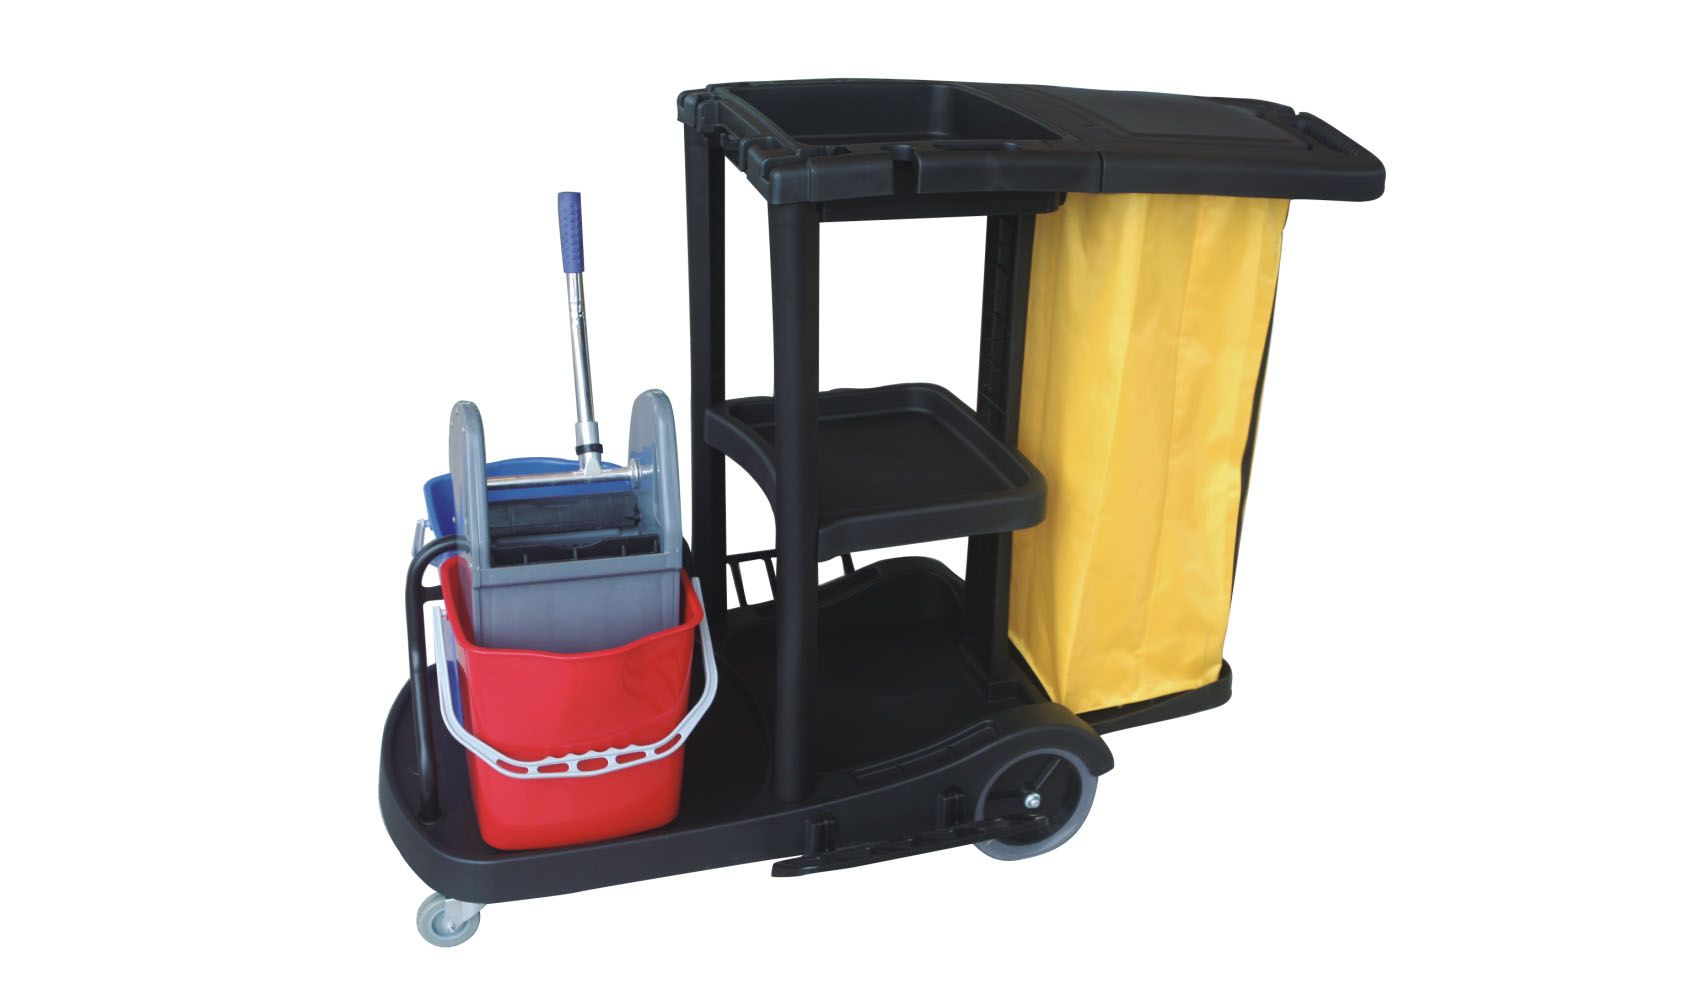 Plasticjanitor Cart Cleaning Maid Trolley